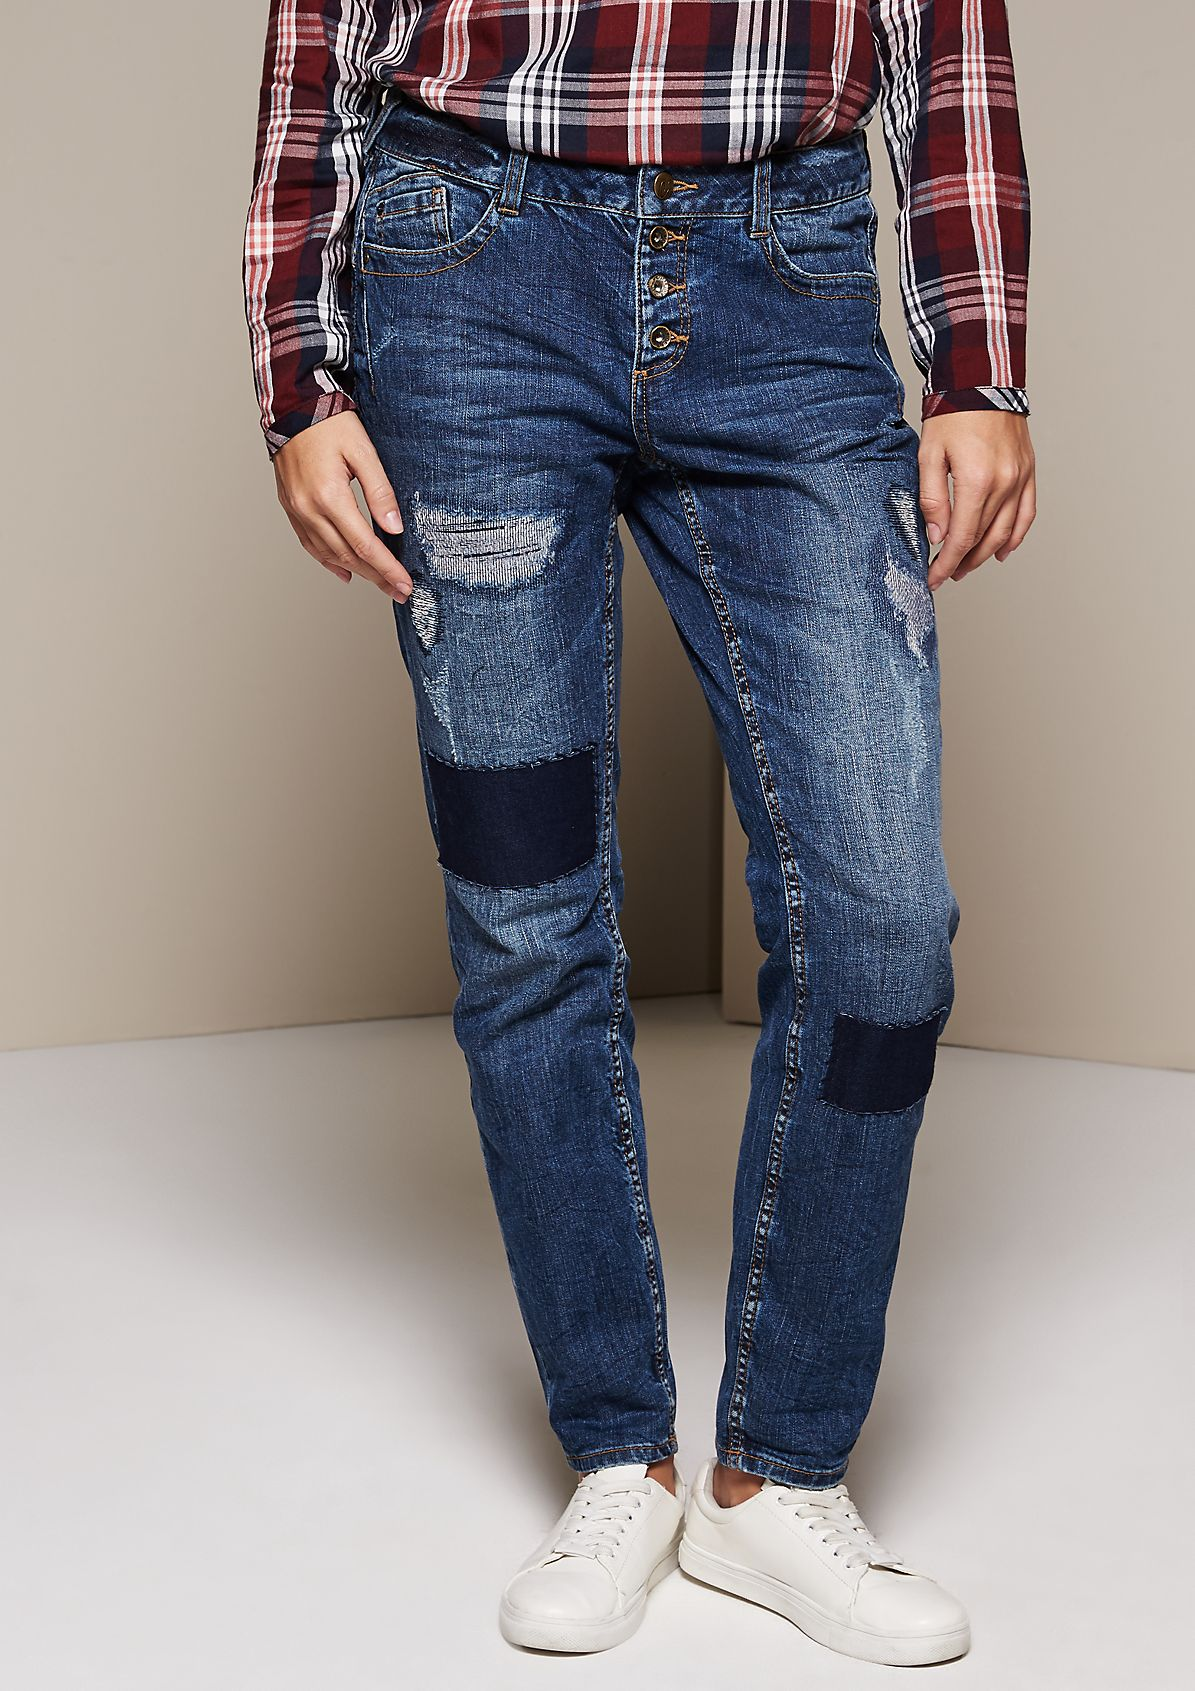 Casual boyfriend jeans in an exciting vintage look from s.Oliver